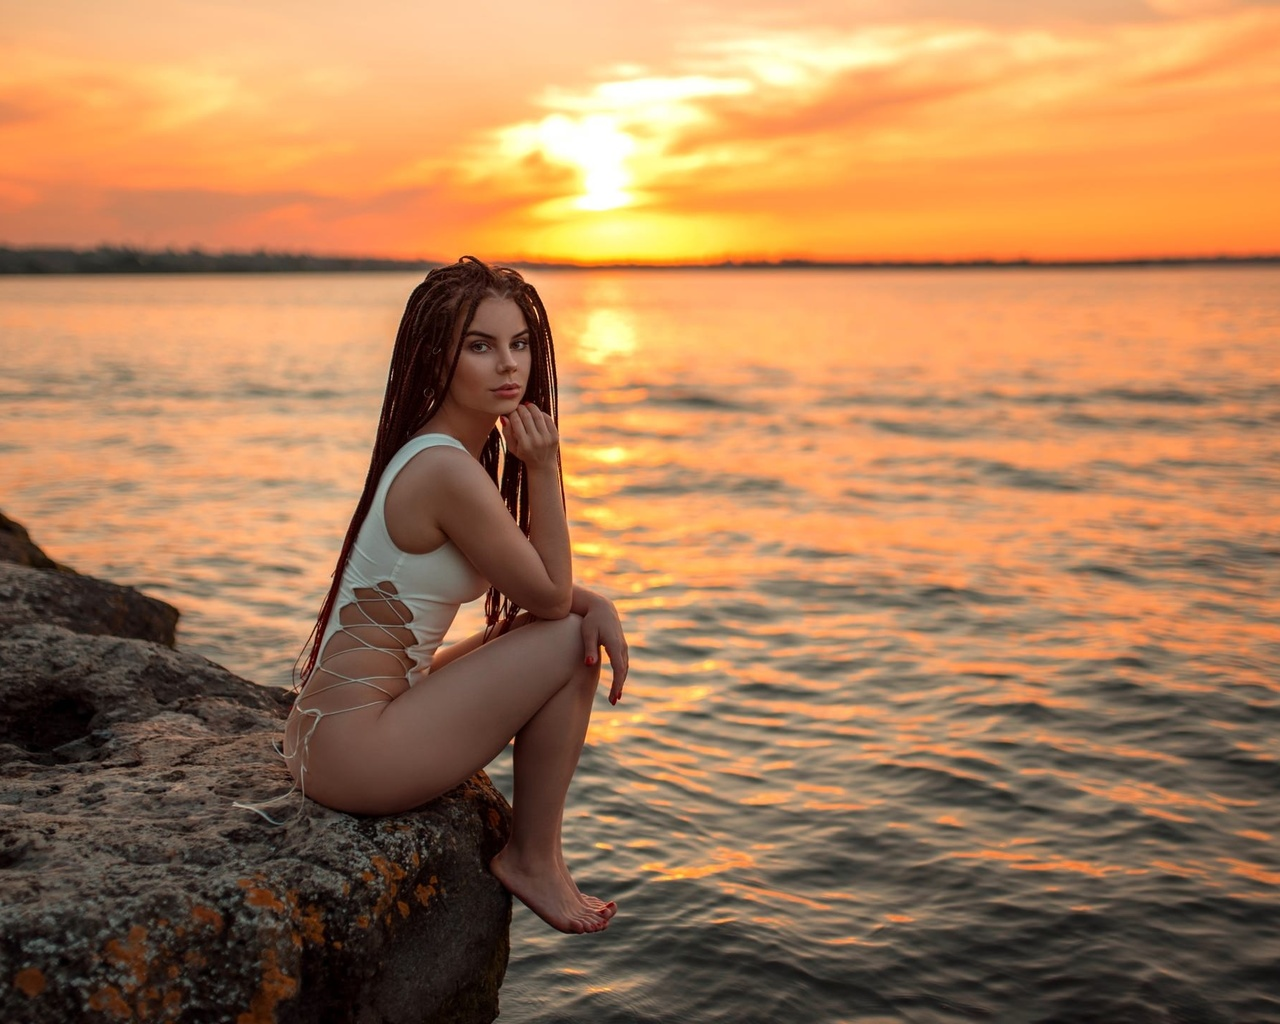 women, one-piece swimsuit, rocks, sunset, women outdoors, brunette, sitting, sea, sky, ass, red nails, long hair